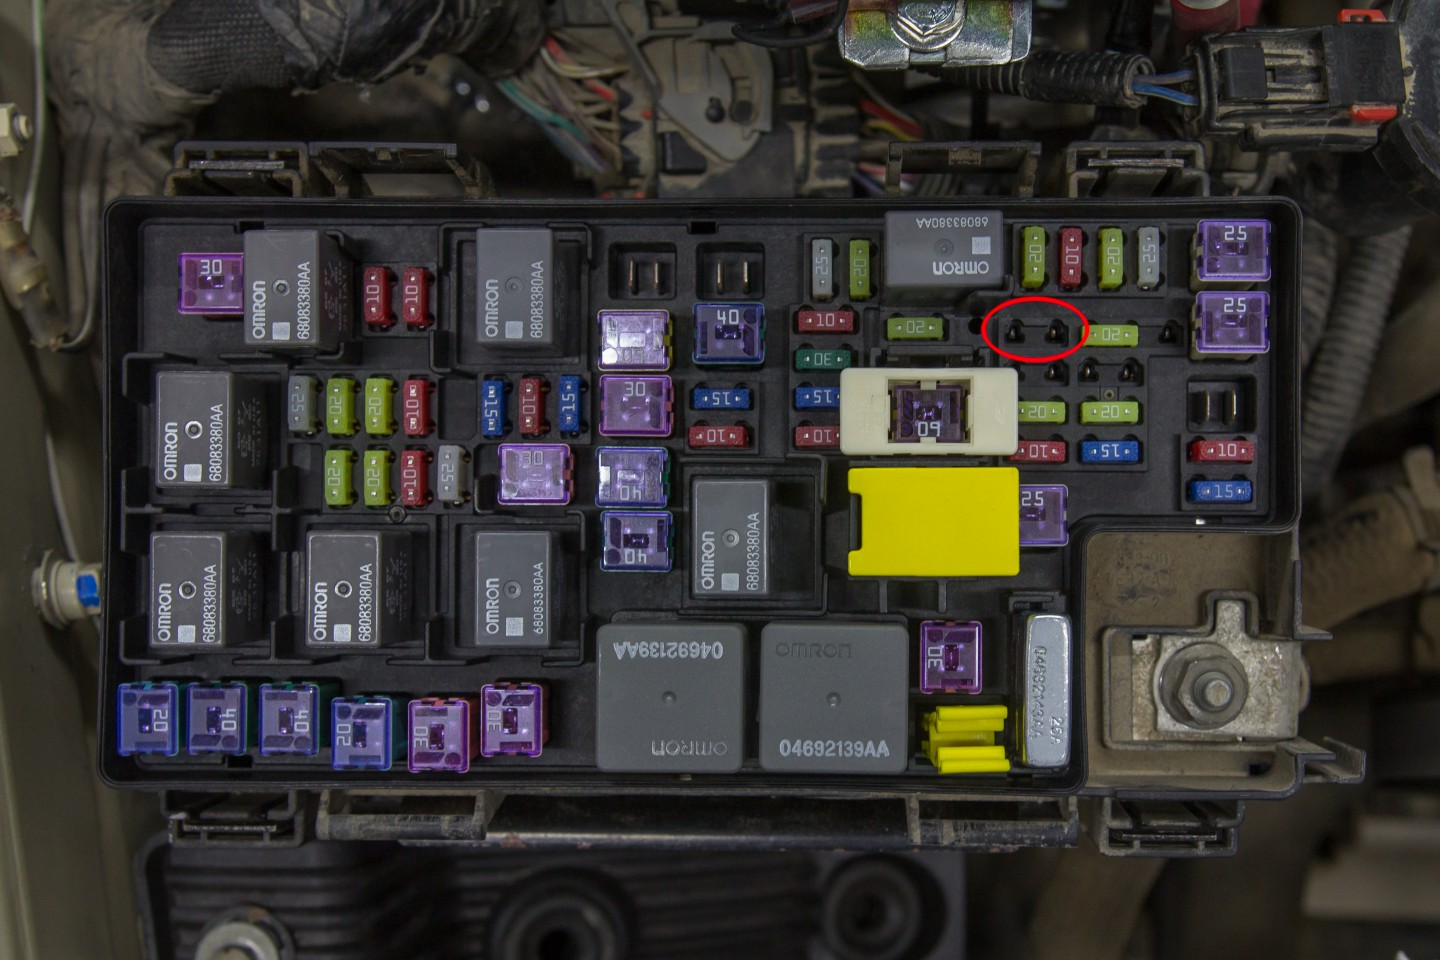 diy jeep wrangler jk isolated dual batteries the road chose me rh theroadchoseme com jeep wrangler jk fuse box location jeep wrangler jk fuse box layout